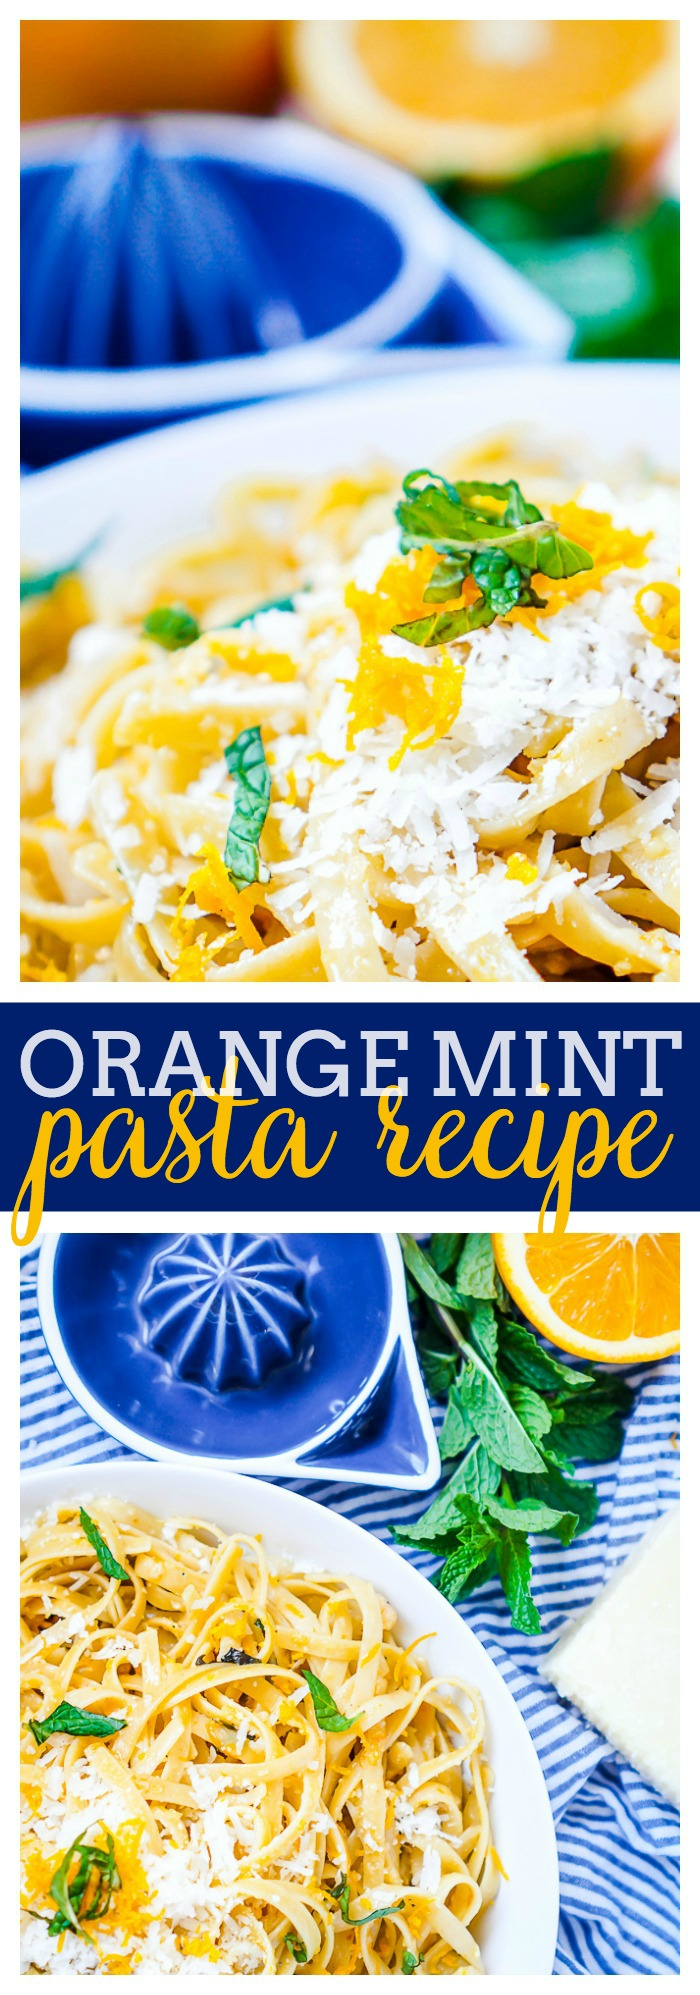 Orange Mint Pasta Recipe - This citrus pasta recipe is a refreshing and light dinner idea that makes the perfect spring pasta recipe and summer pasta recipe! Though I do love it all year long as dinner and side dish! | The Love Nerds